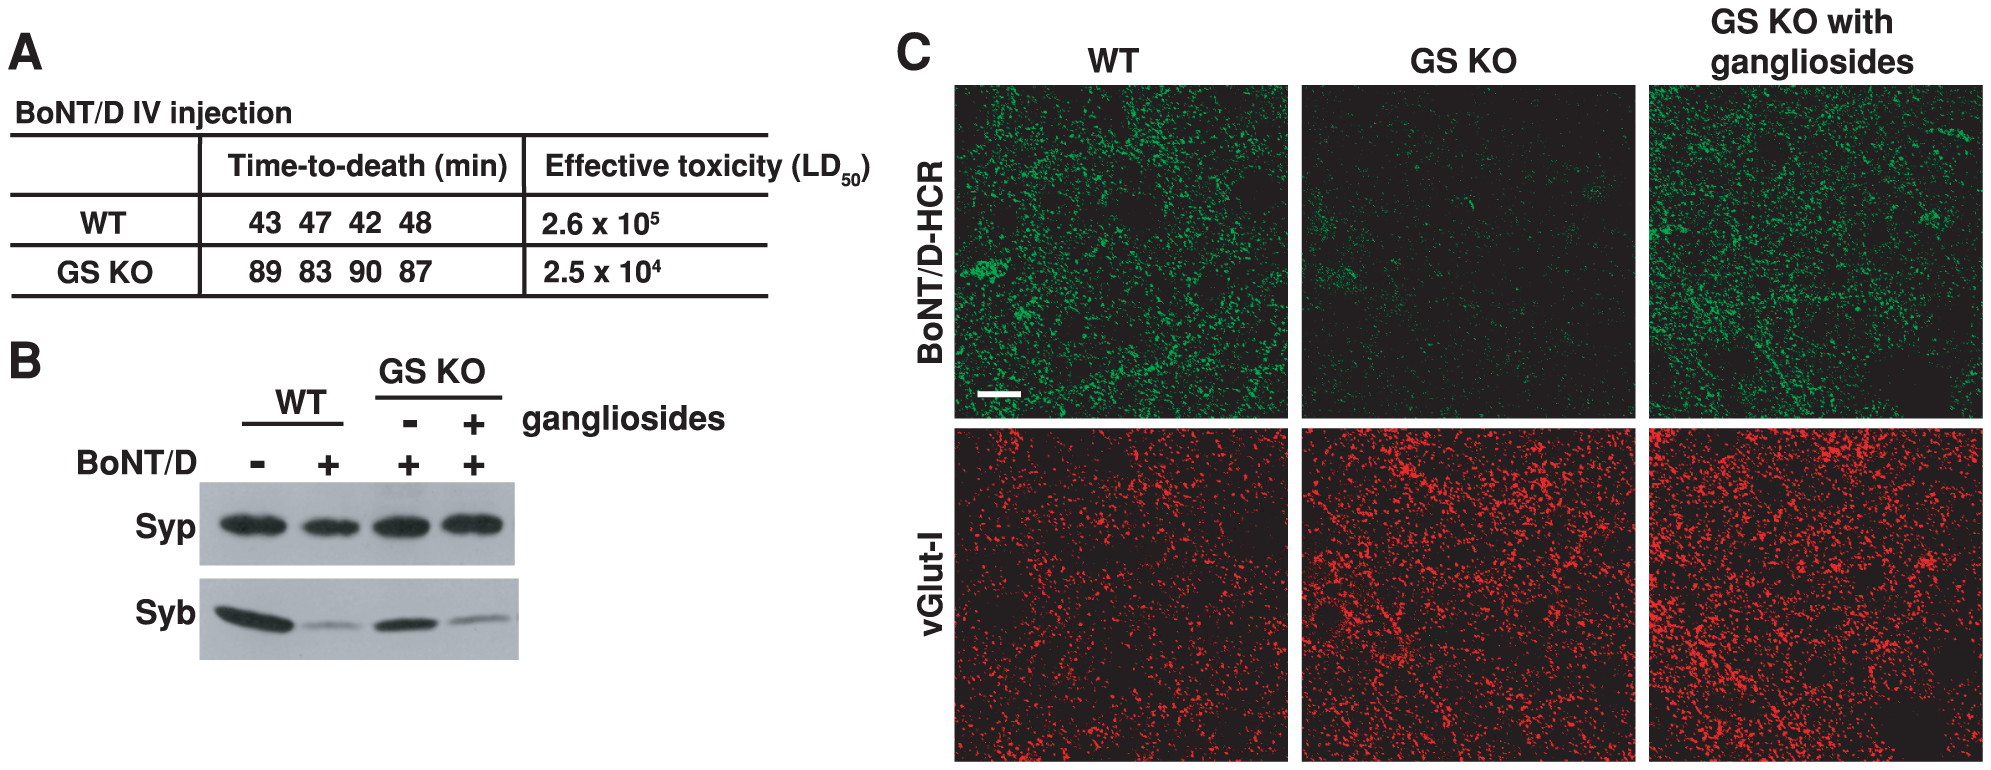 PSG are essential for the binding and entry of BoNT/D into neurons.